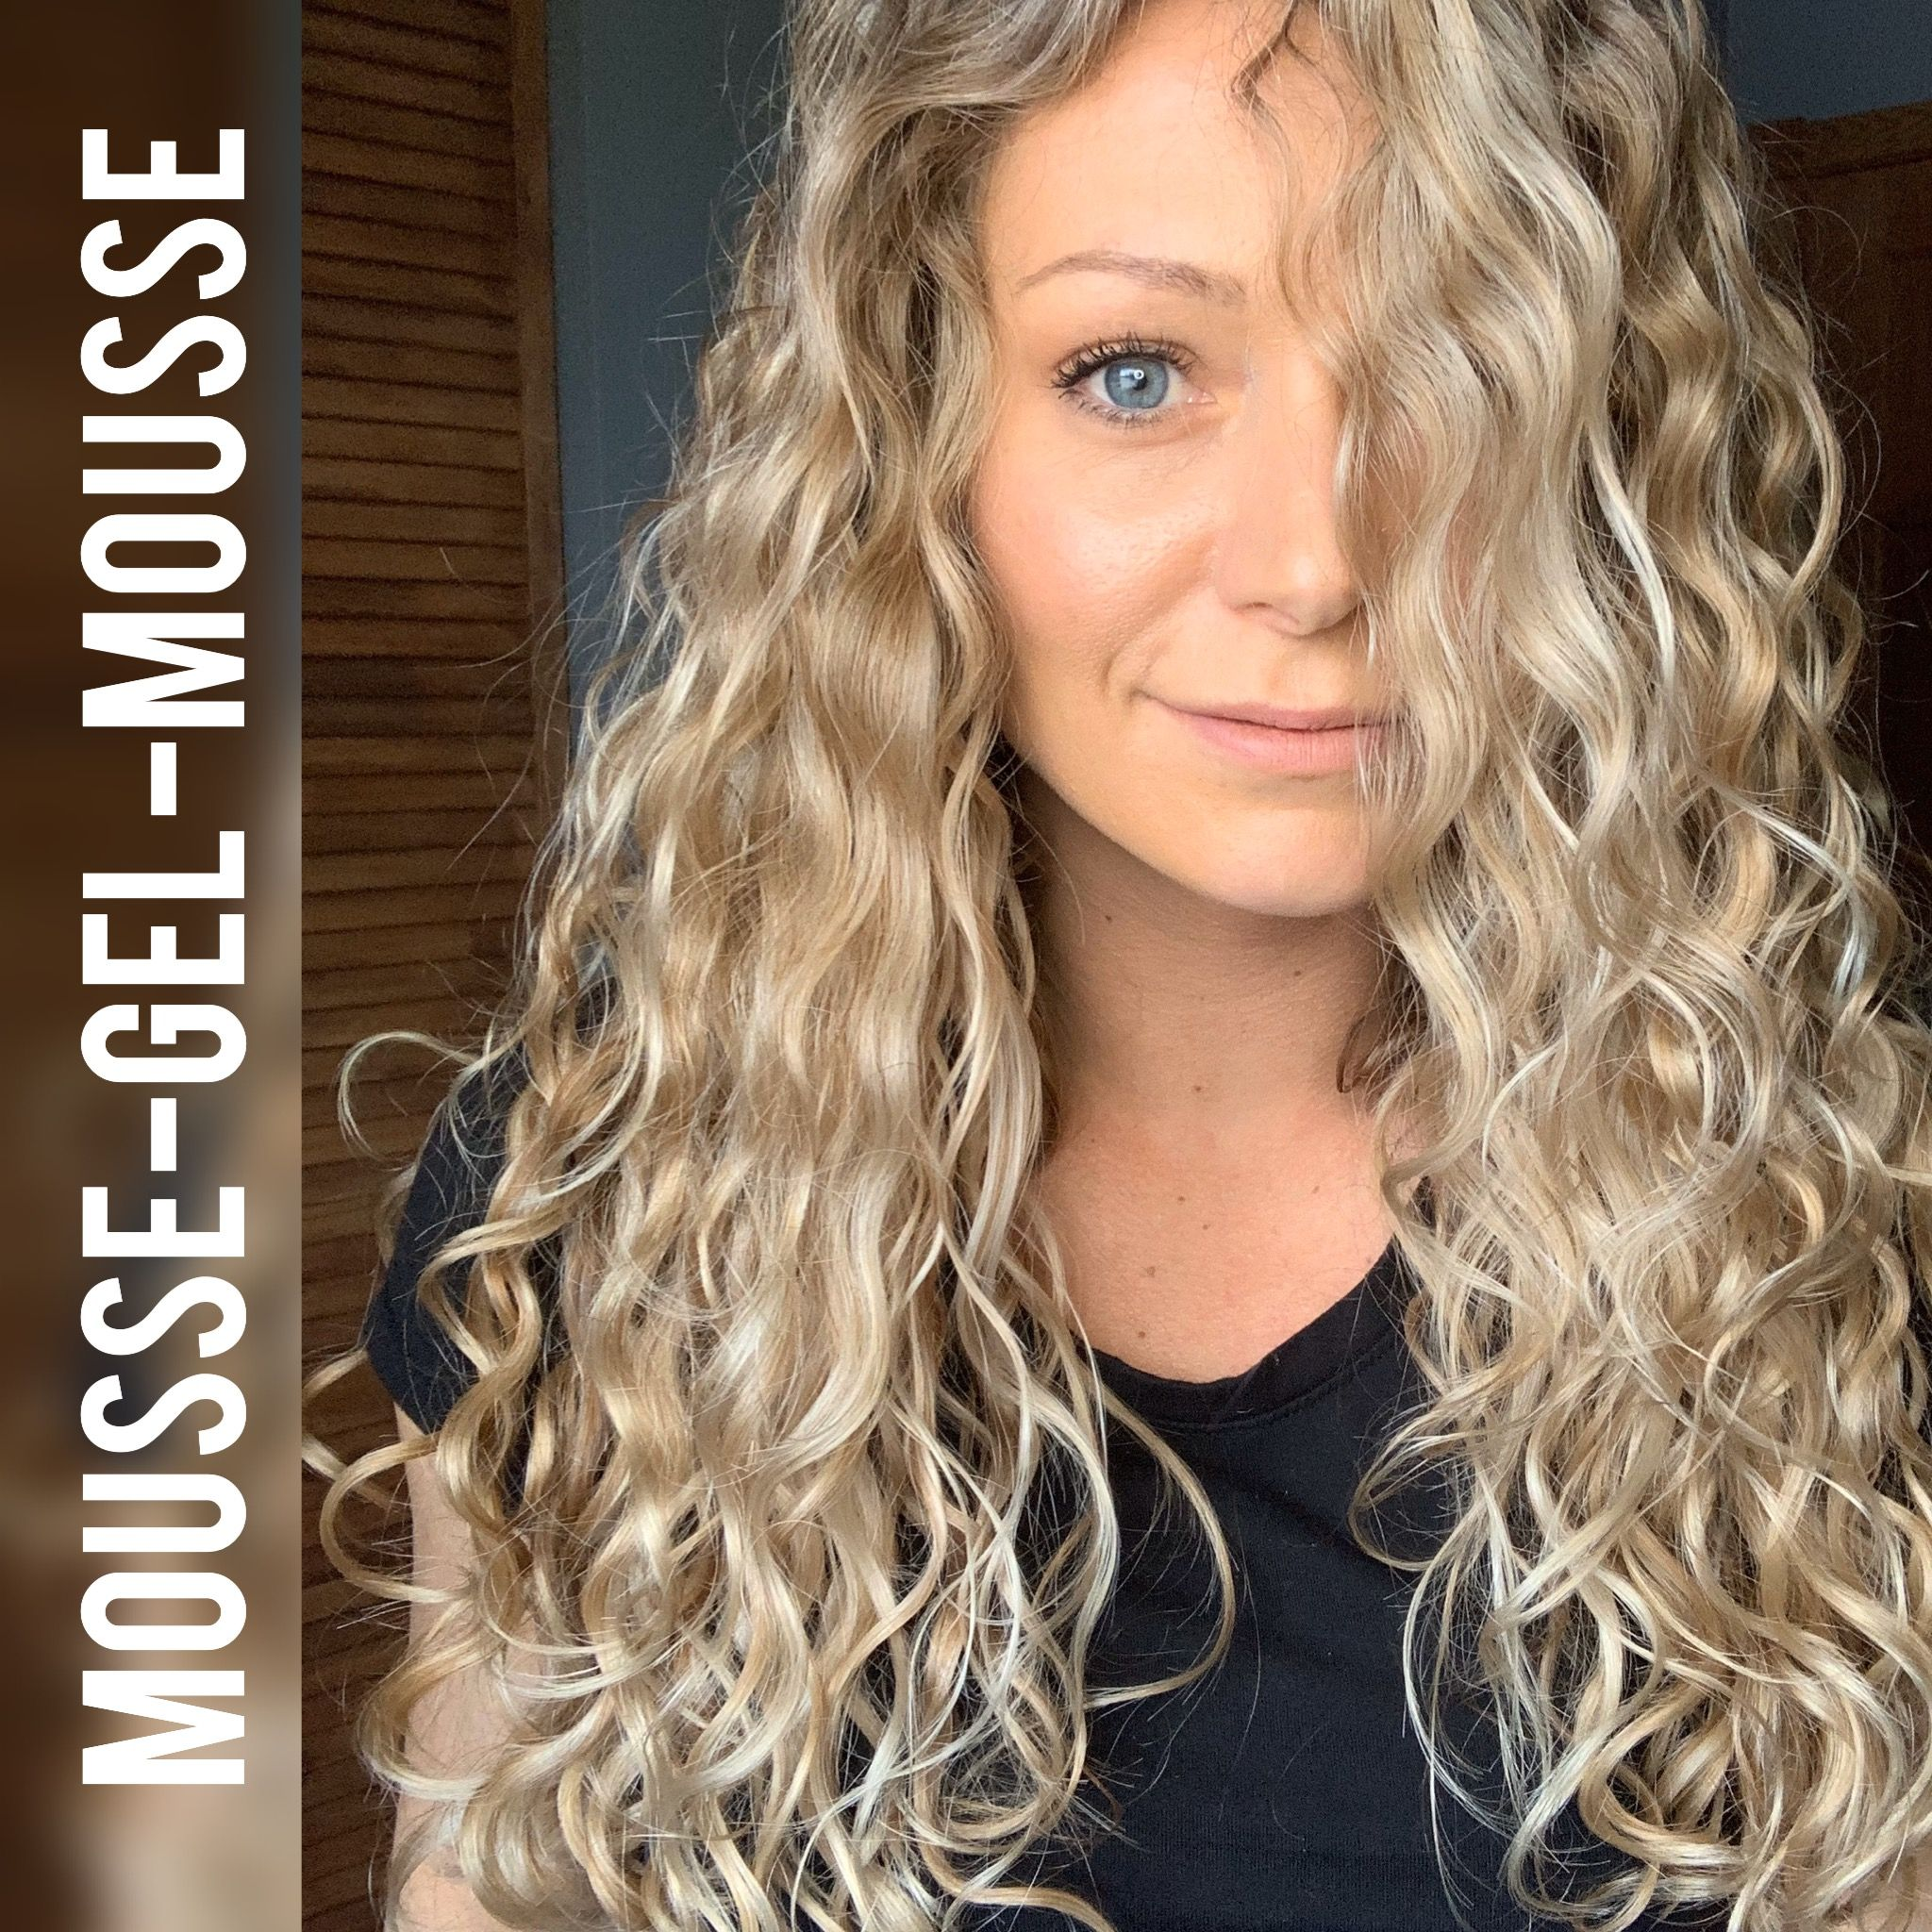 Mgm For Naturally Curly Hair In 2020 Hair Mousse Natural Wavy Hair Wavy Curly Hair